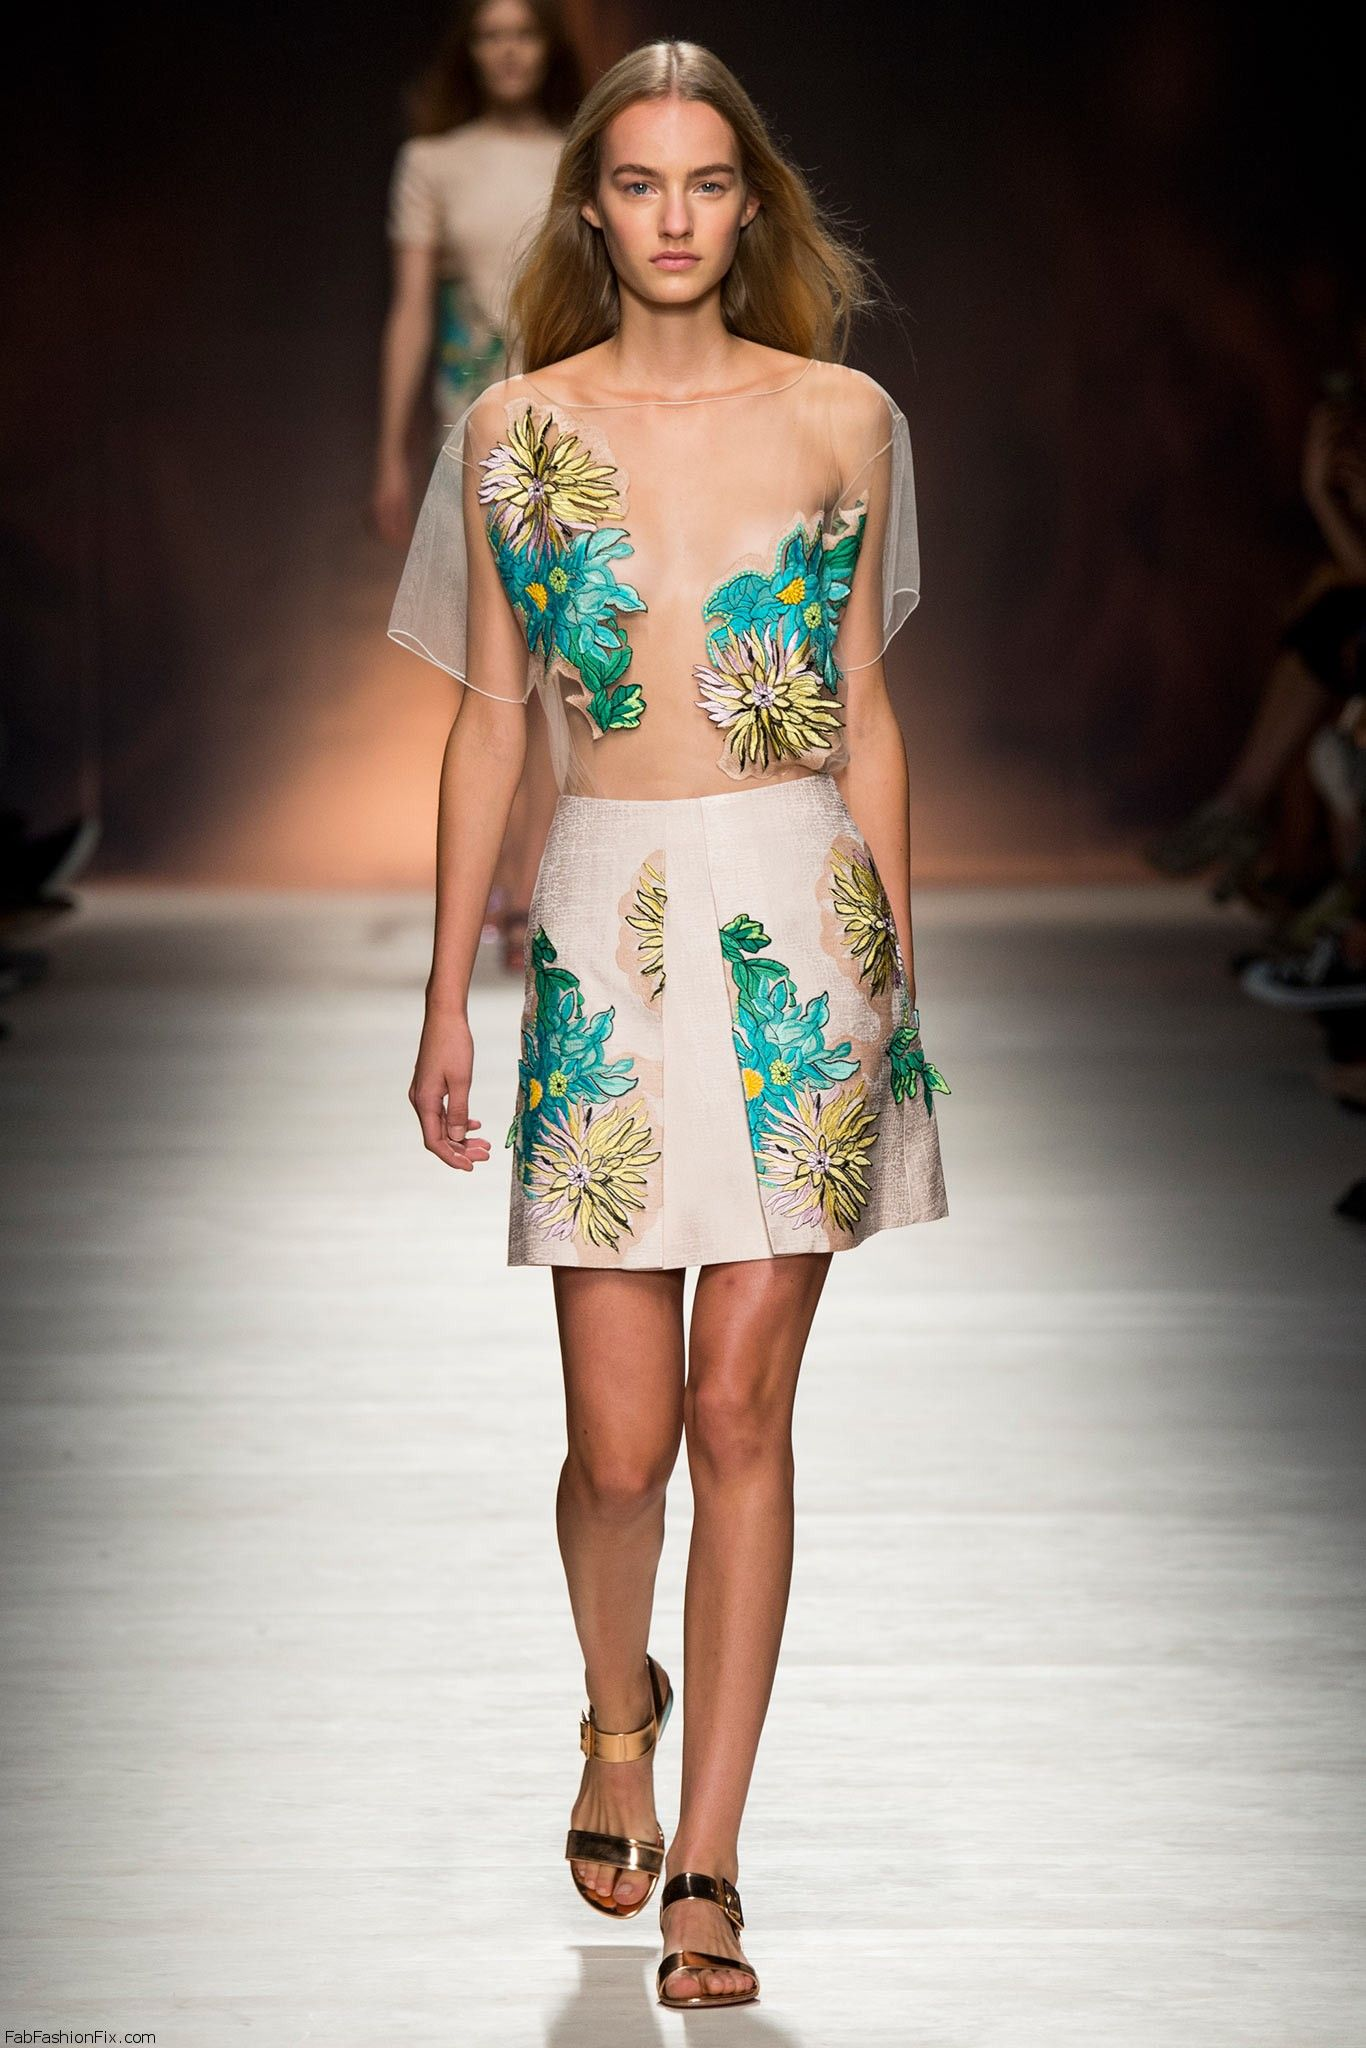 Blumarine spring/summer 2015 collection